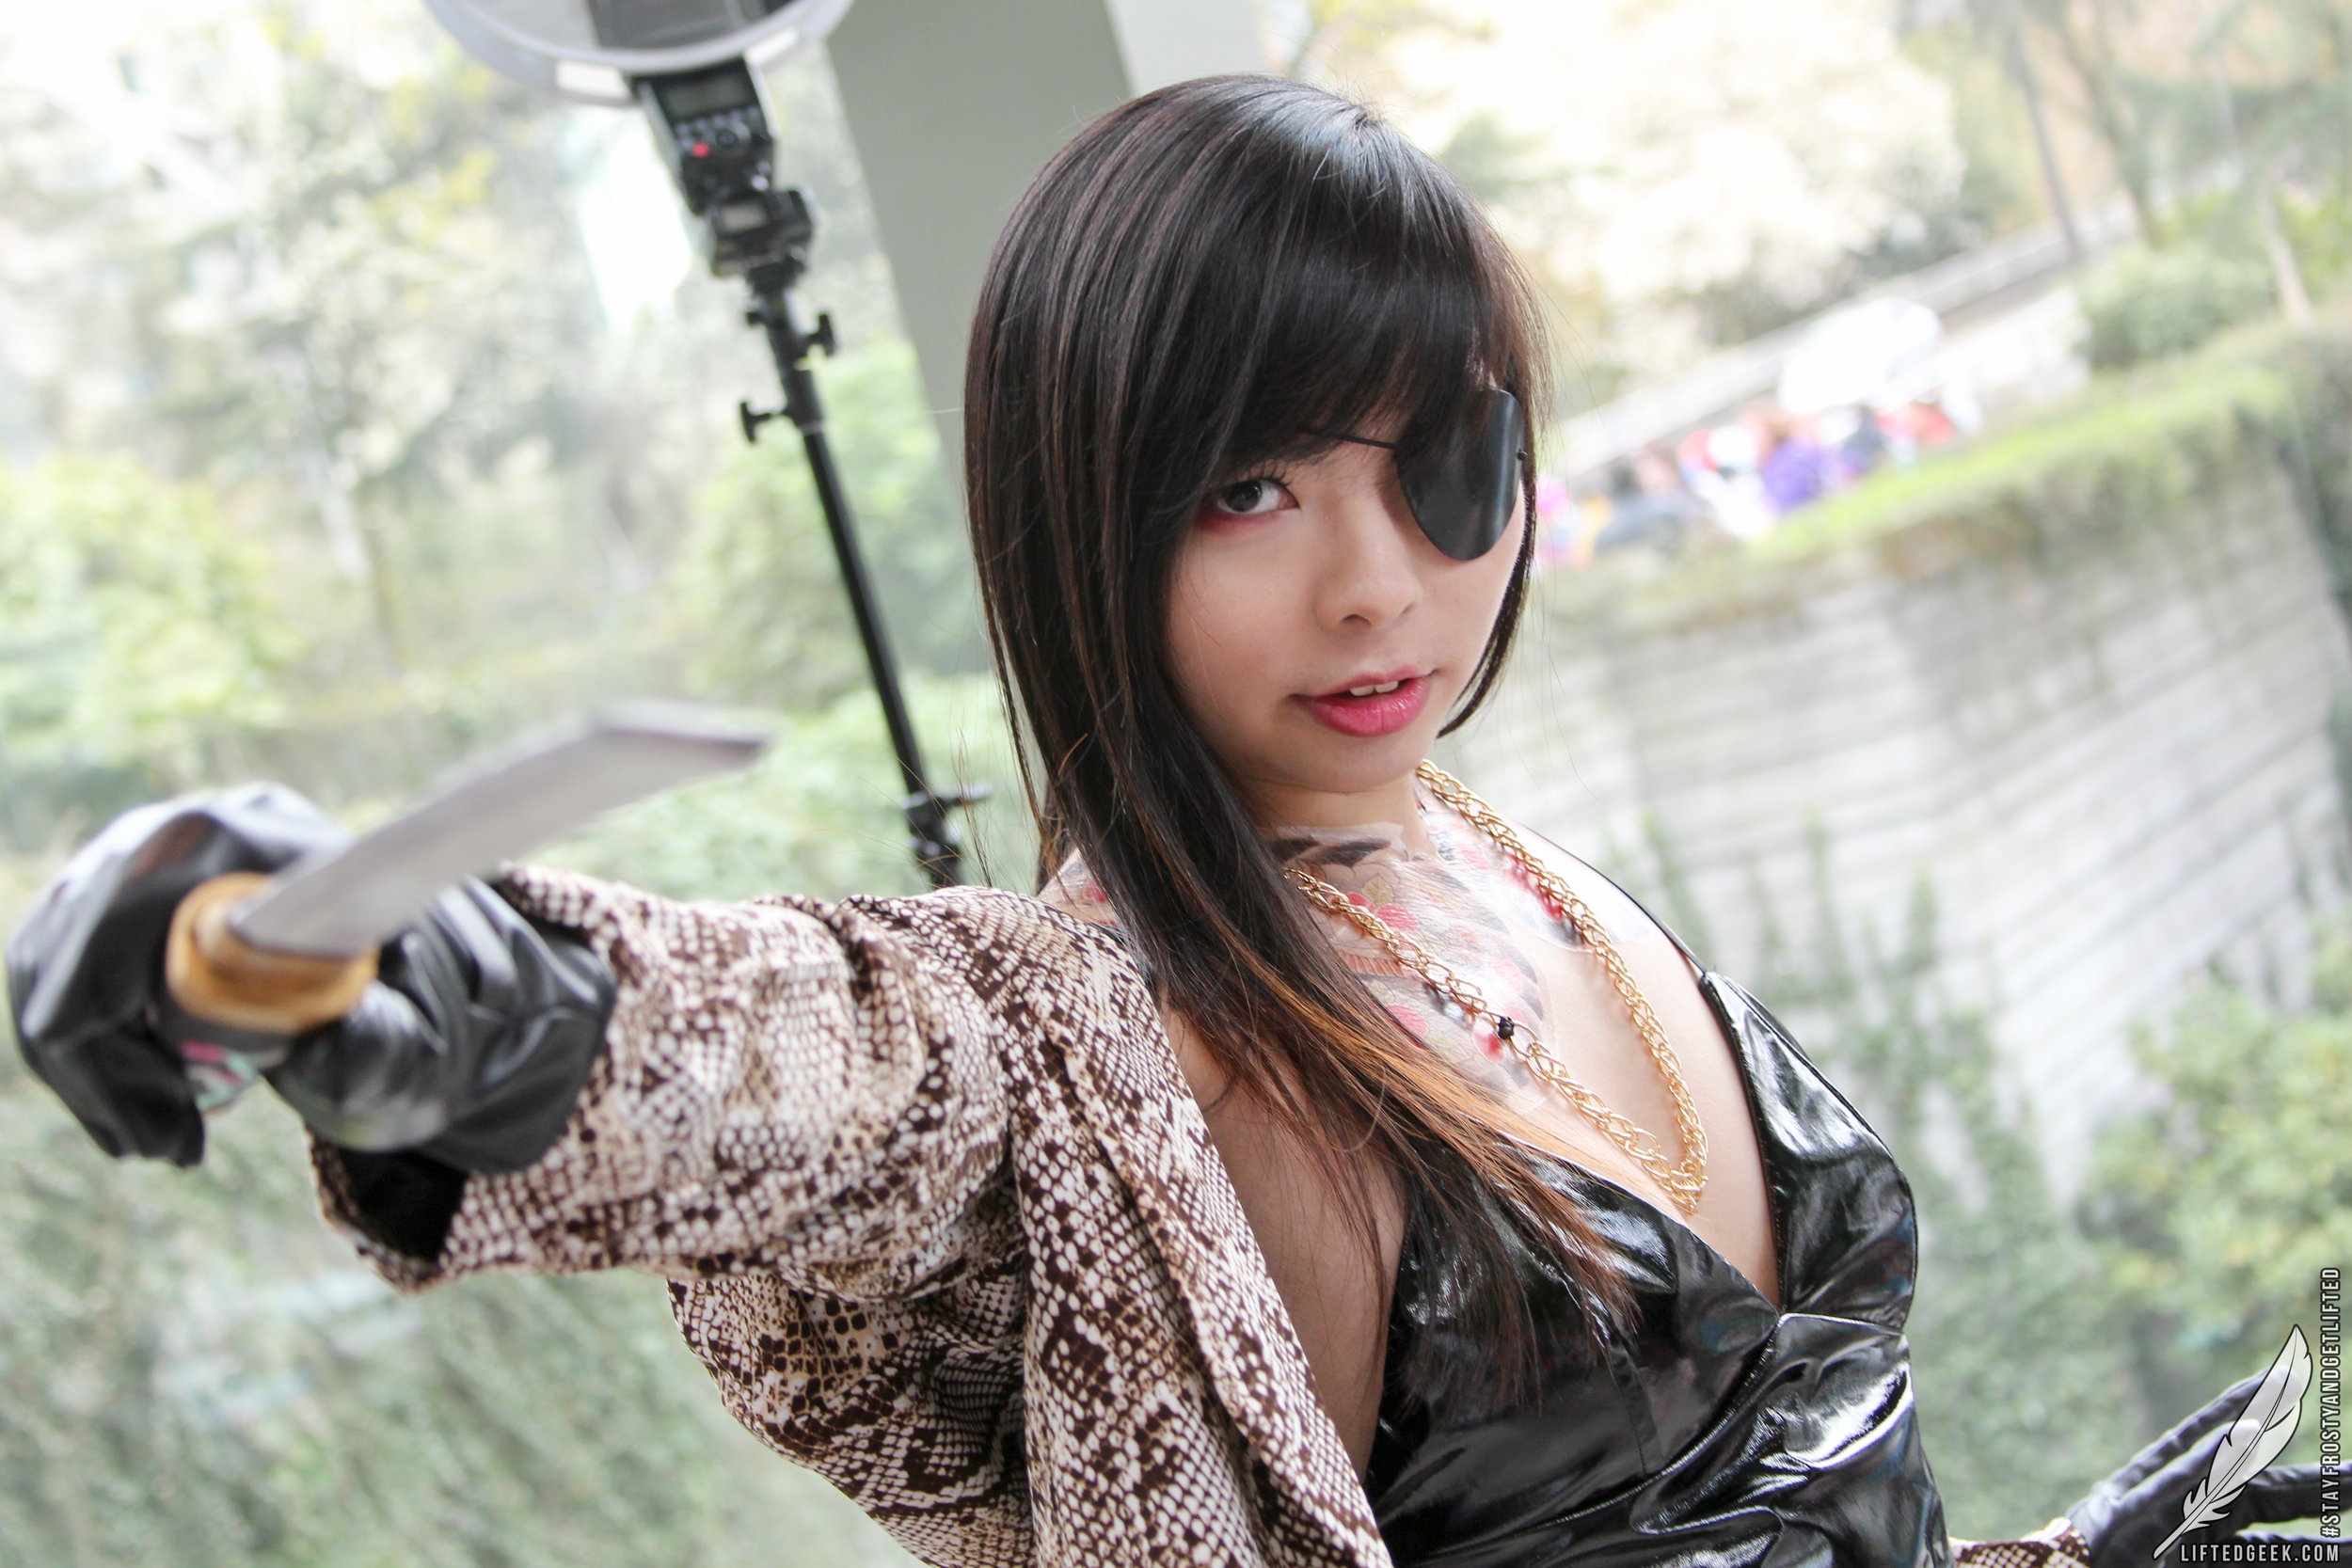 Sakuracon-cosplay-56.jpg